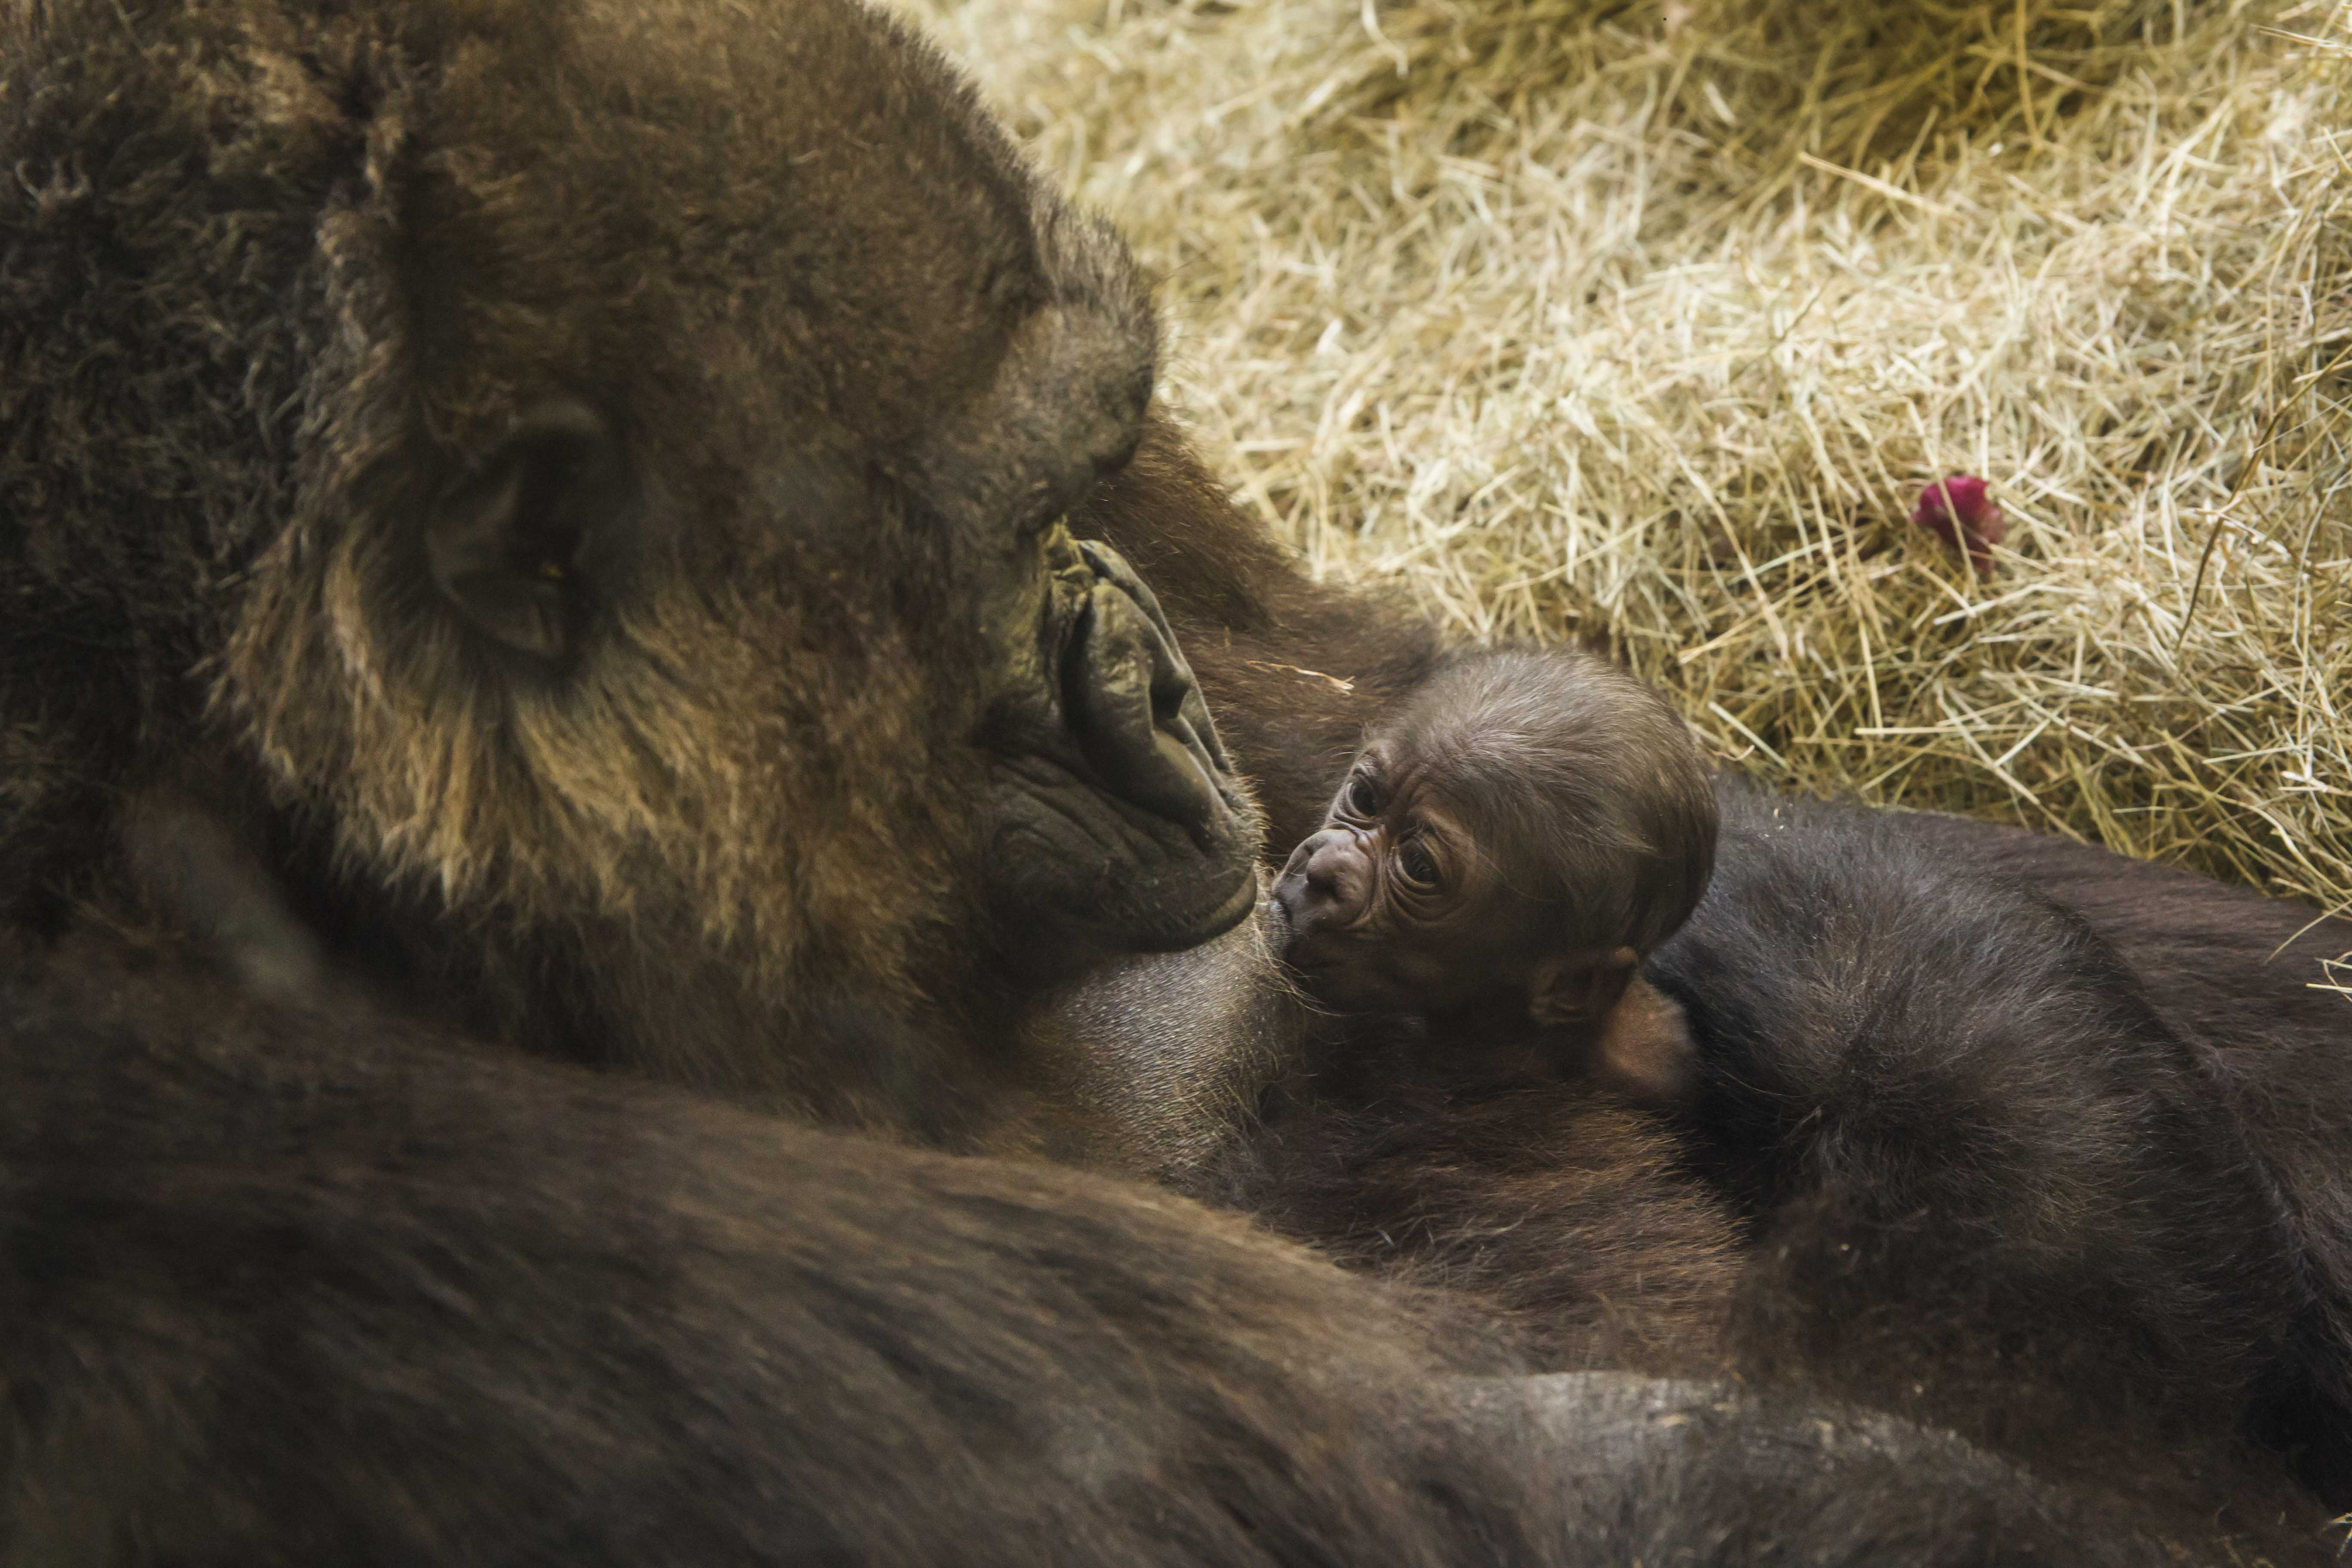 Endangered baby gorilla born at Busch Gardens